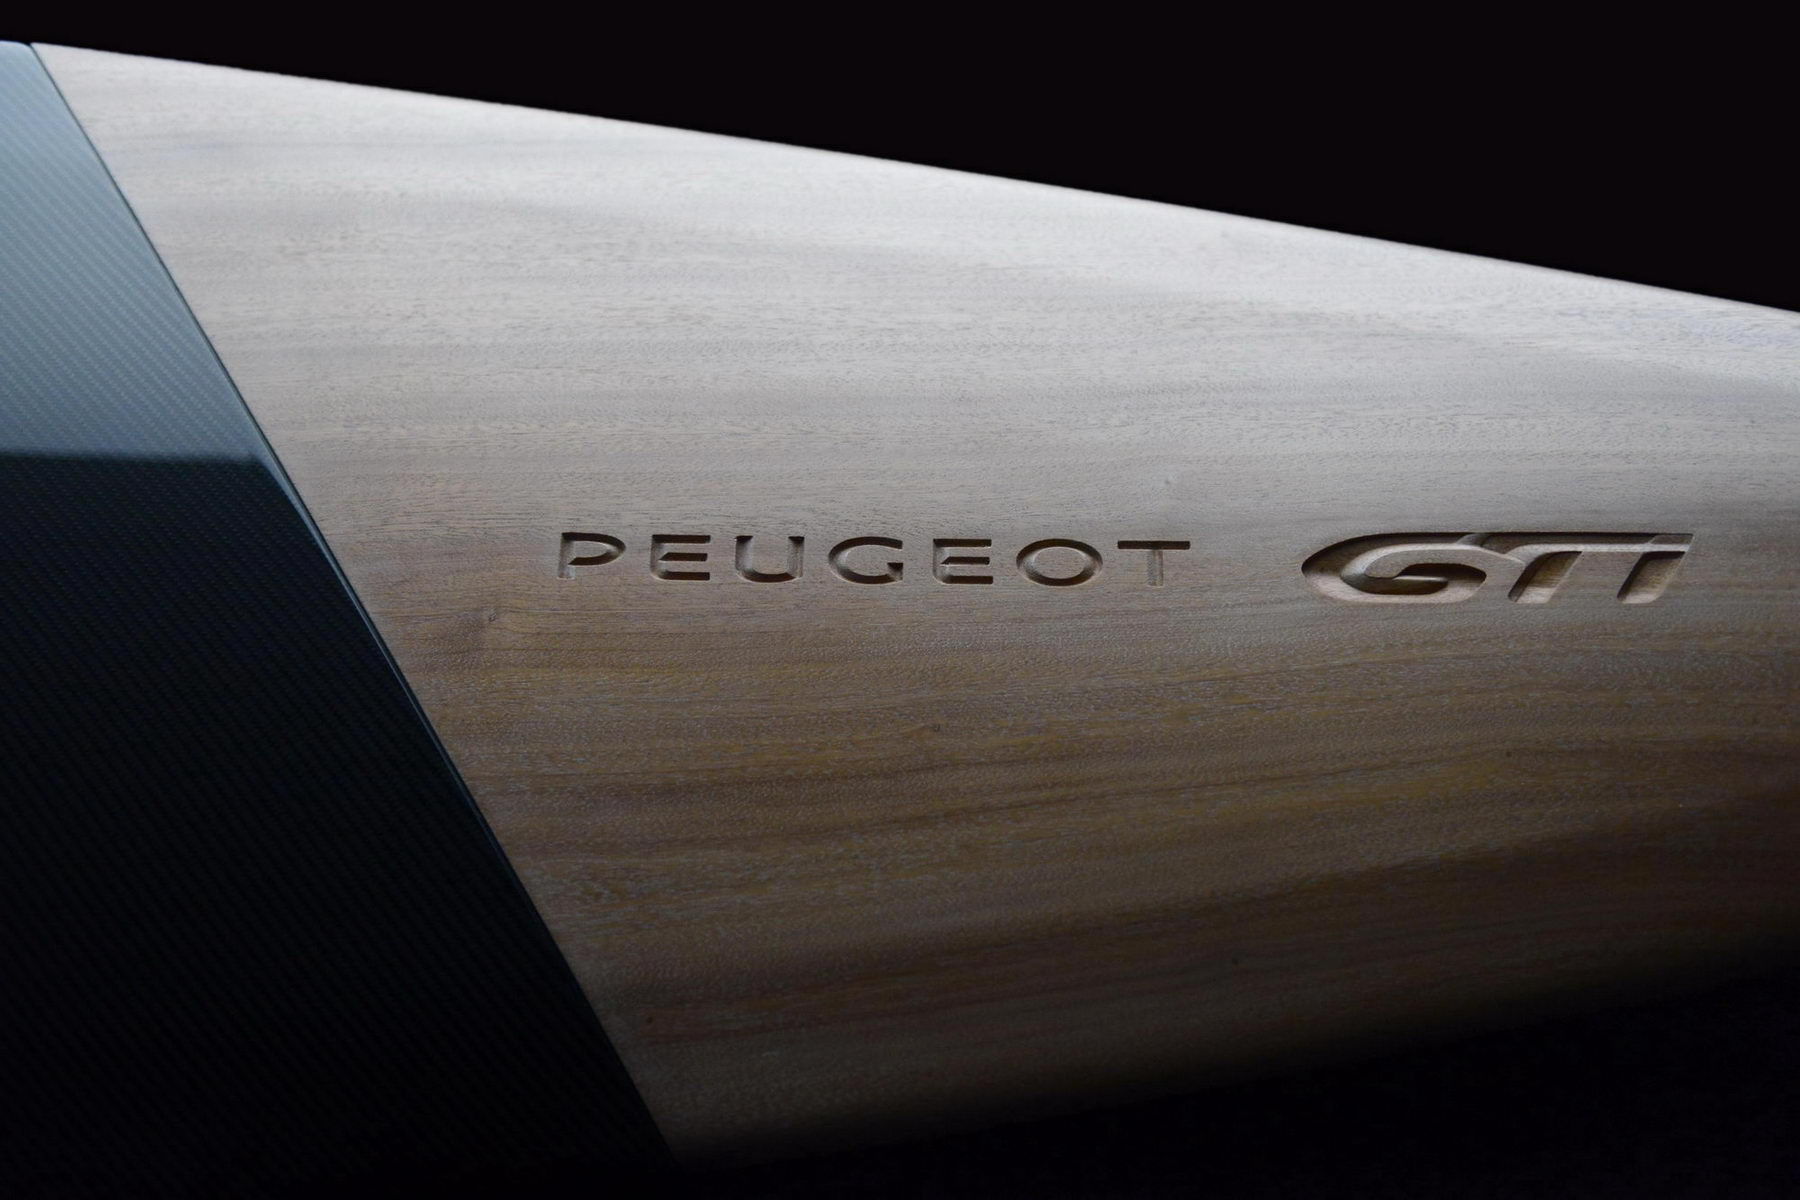 Transport - Photos - Peugeot GTI Surfboard Concept